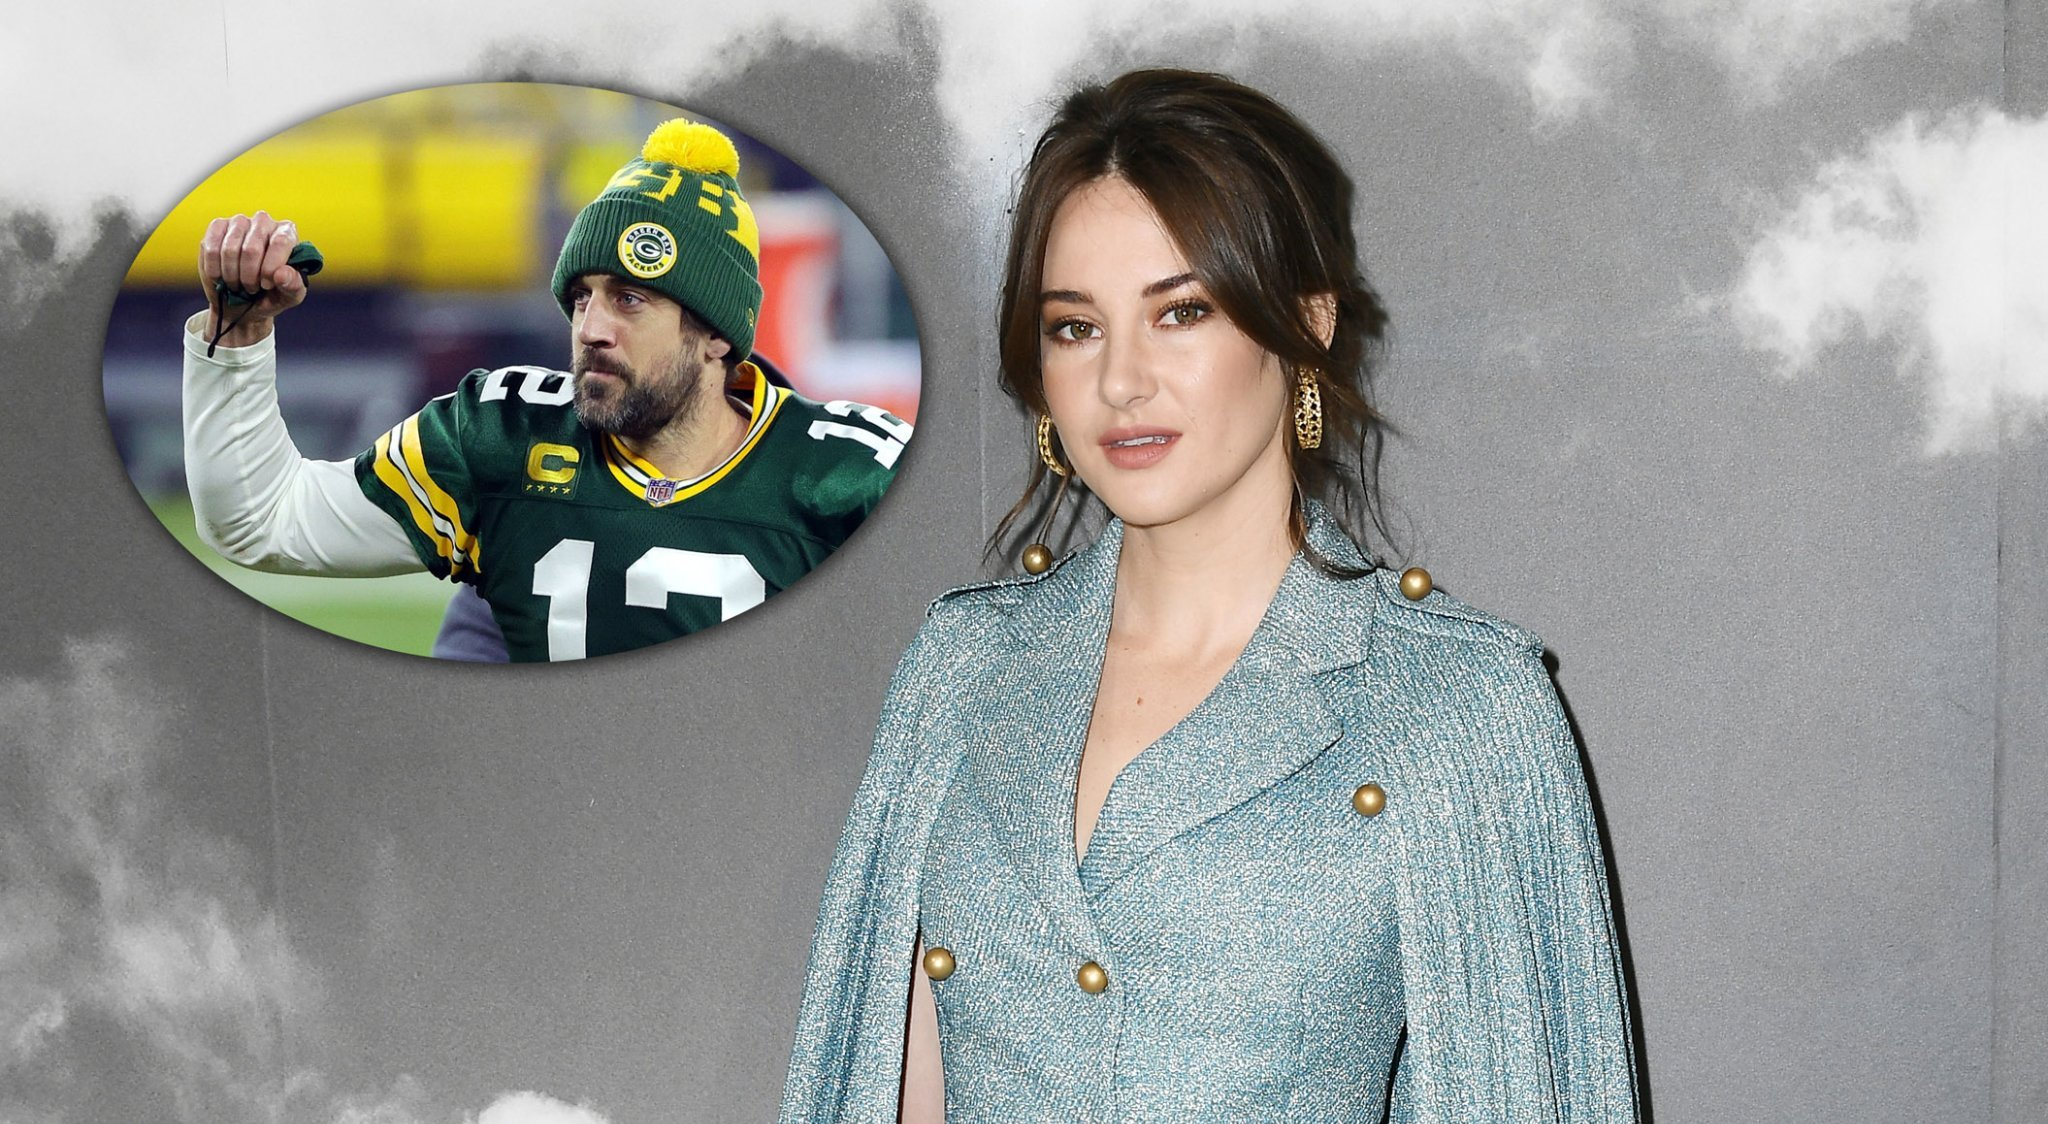 Shailene Woodley's first Instagram with Aaron Rodgers has us worried